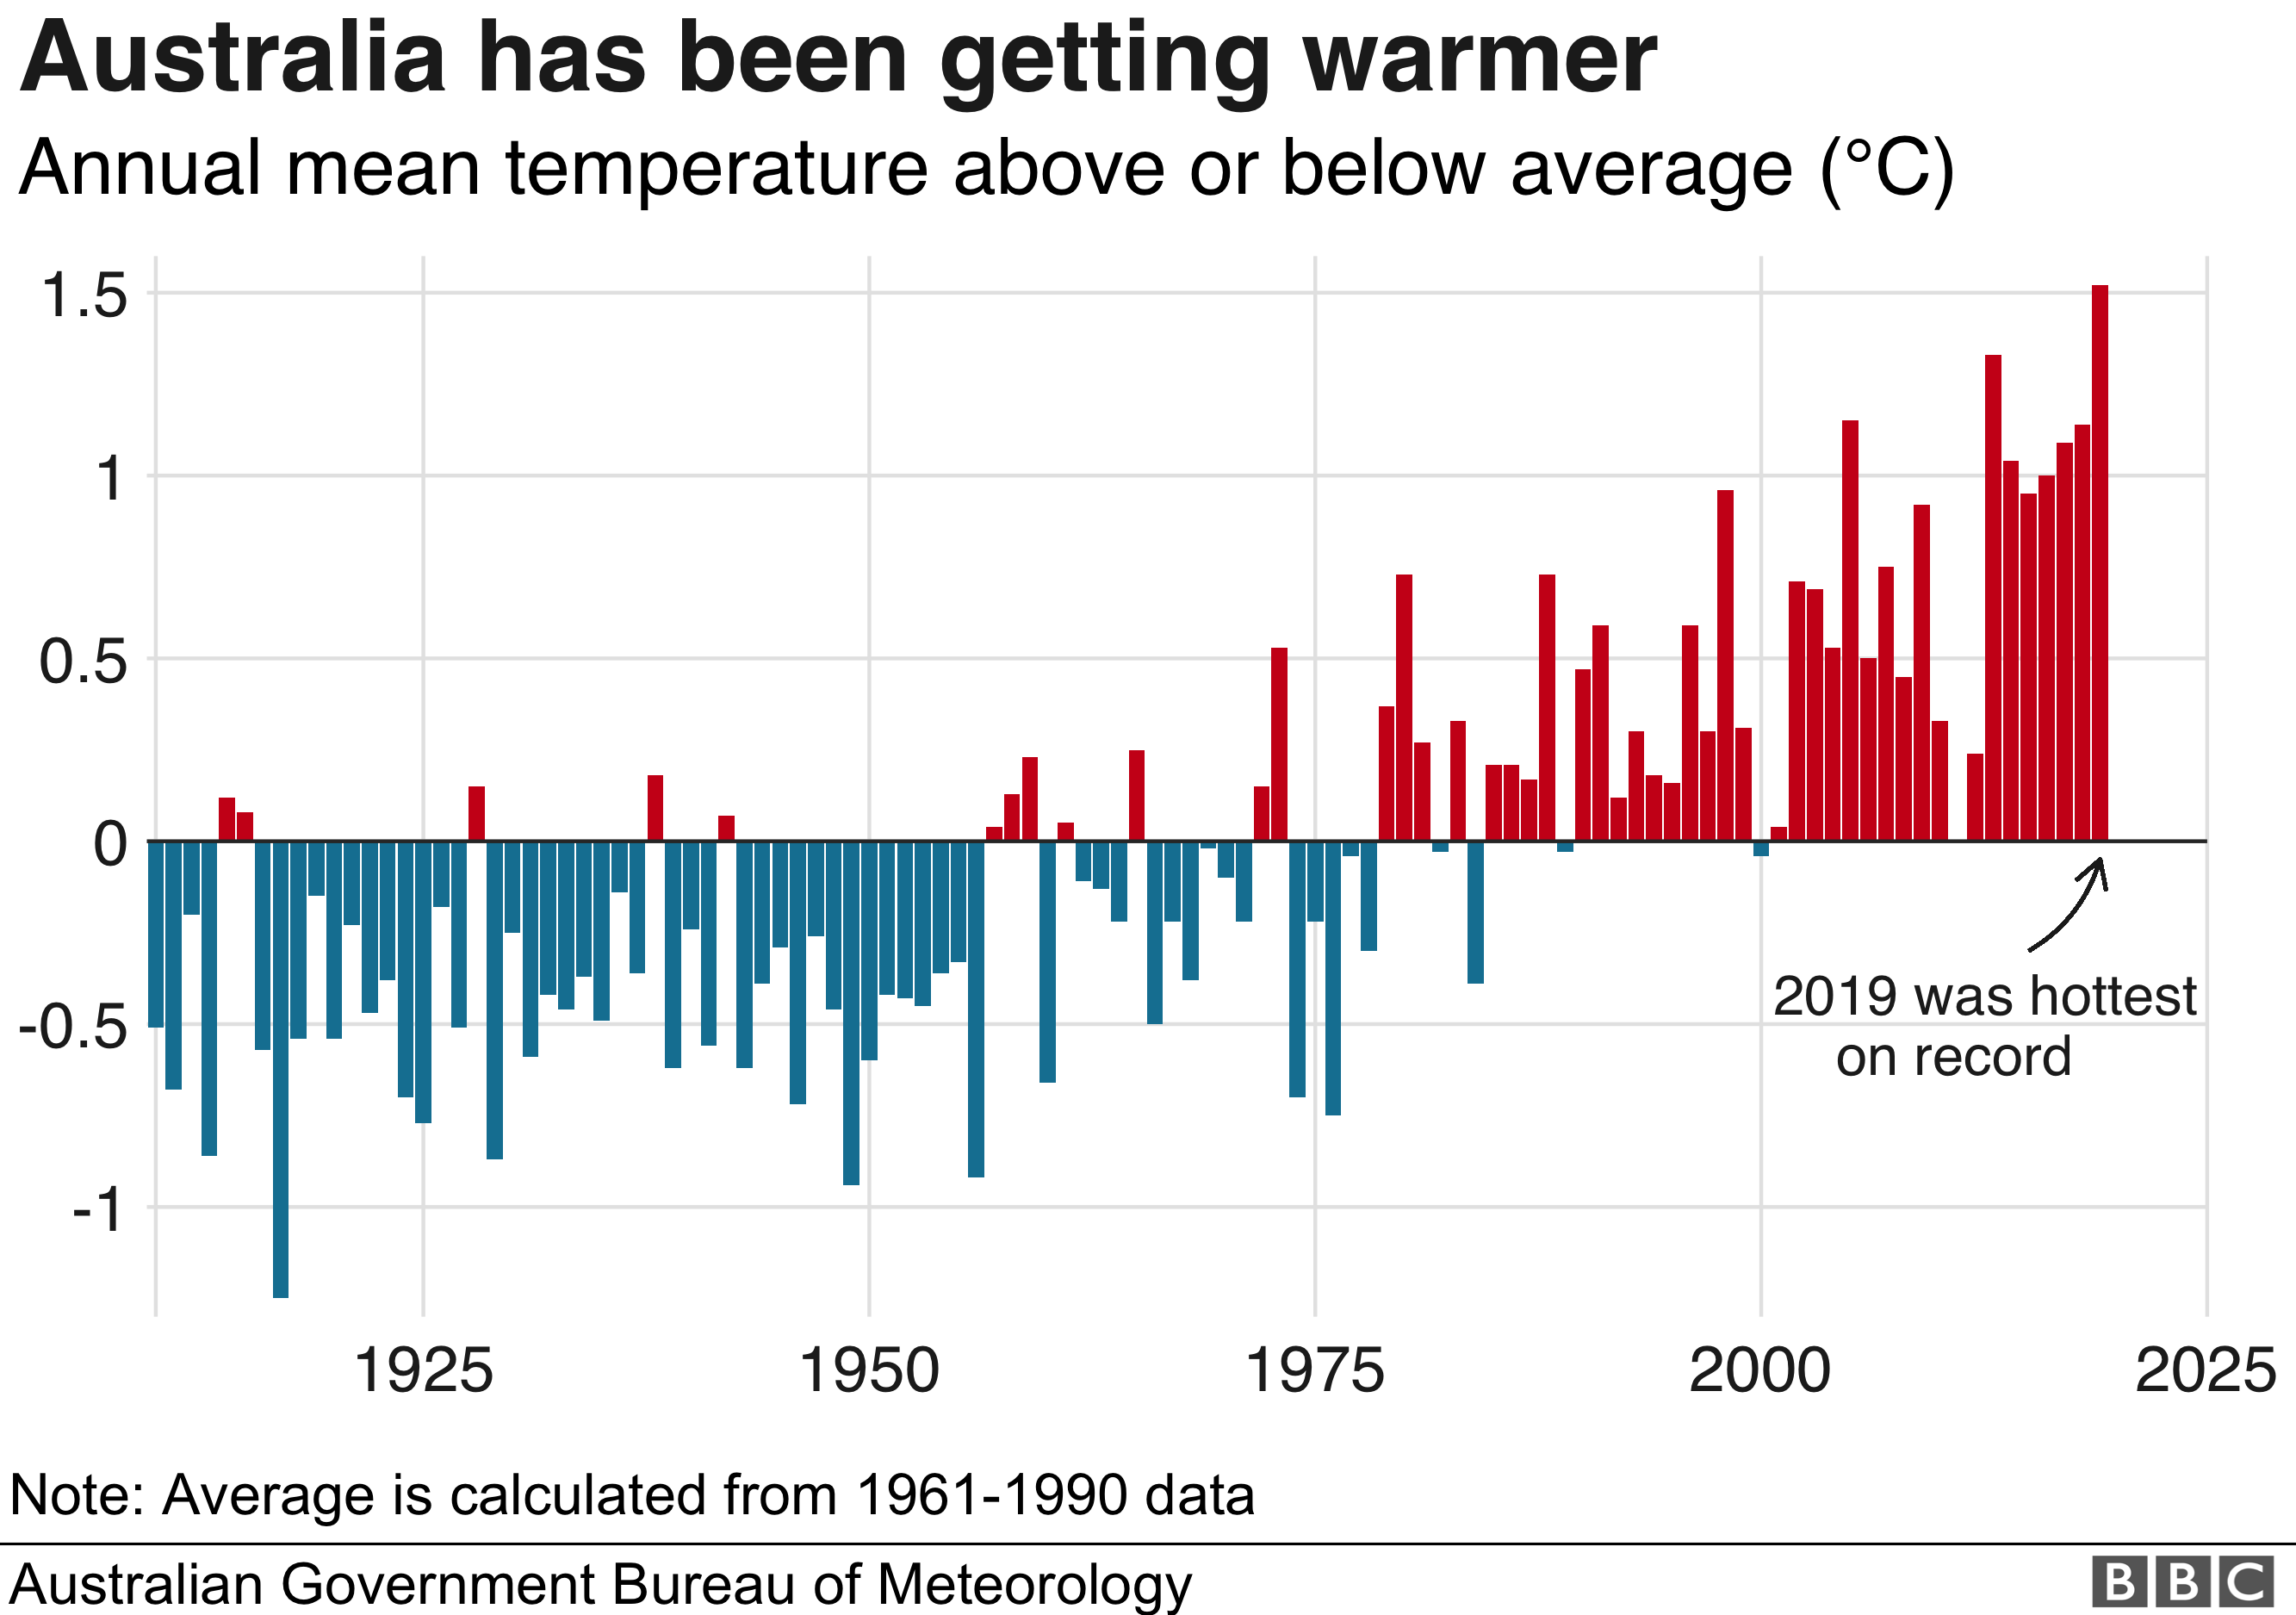 Chart showing how Australia has been getting warmer